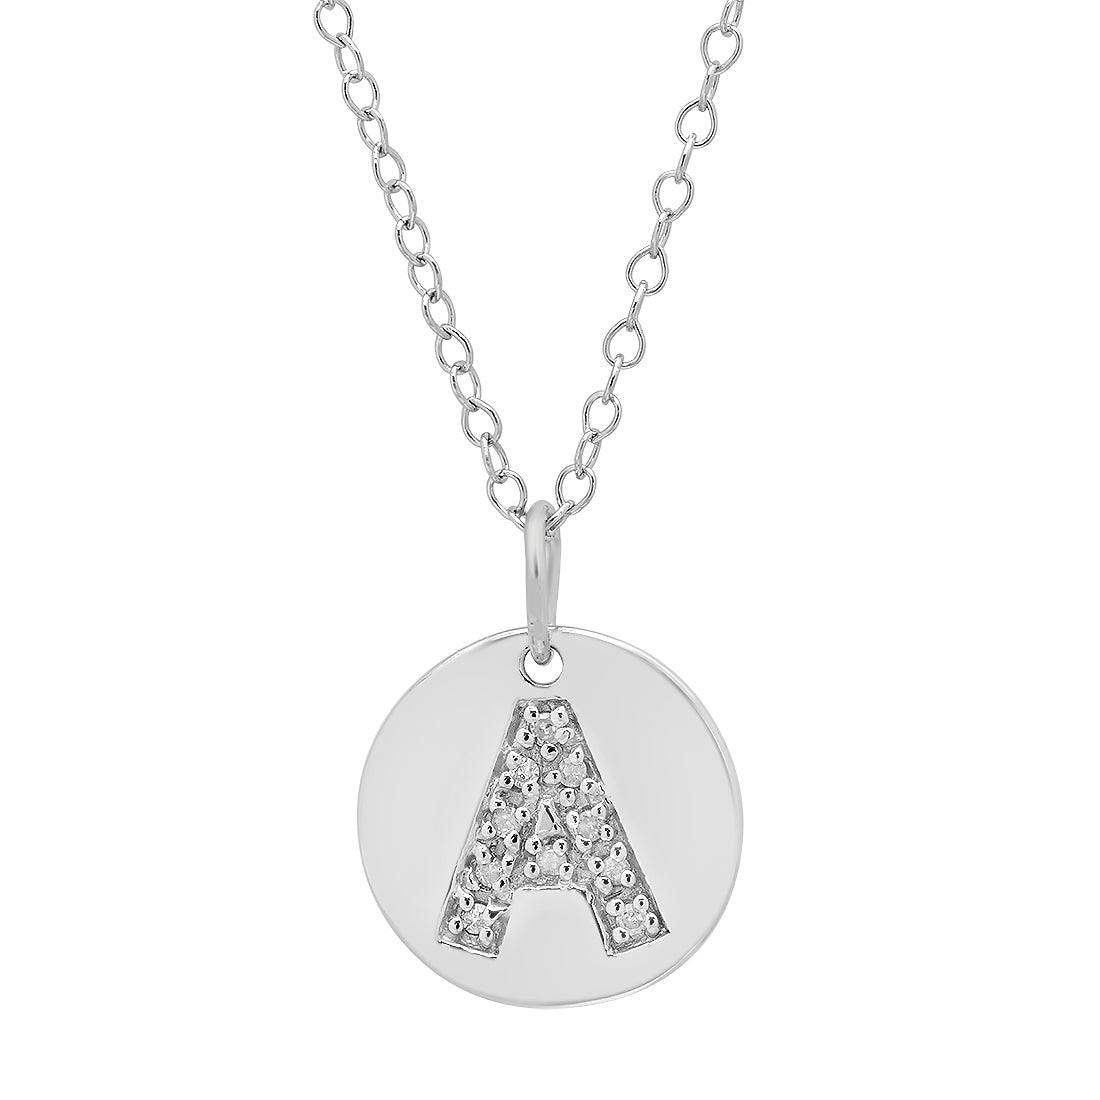 Sterling silver diamond initial a disc pendant necklace mlg jewelry sterling silver diamond initial a disc pendant necklace pendants wish trends aloadofball Image collections